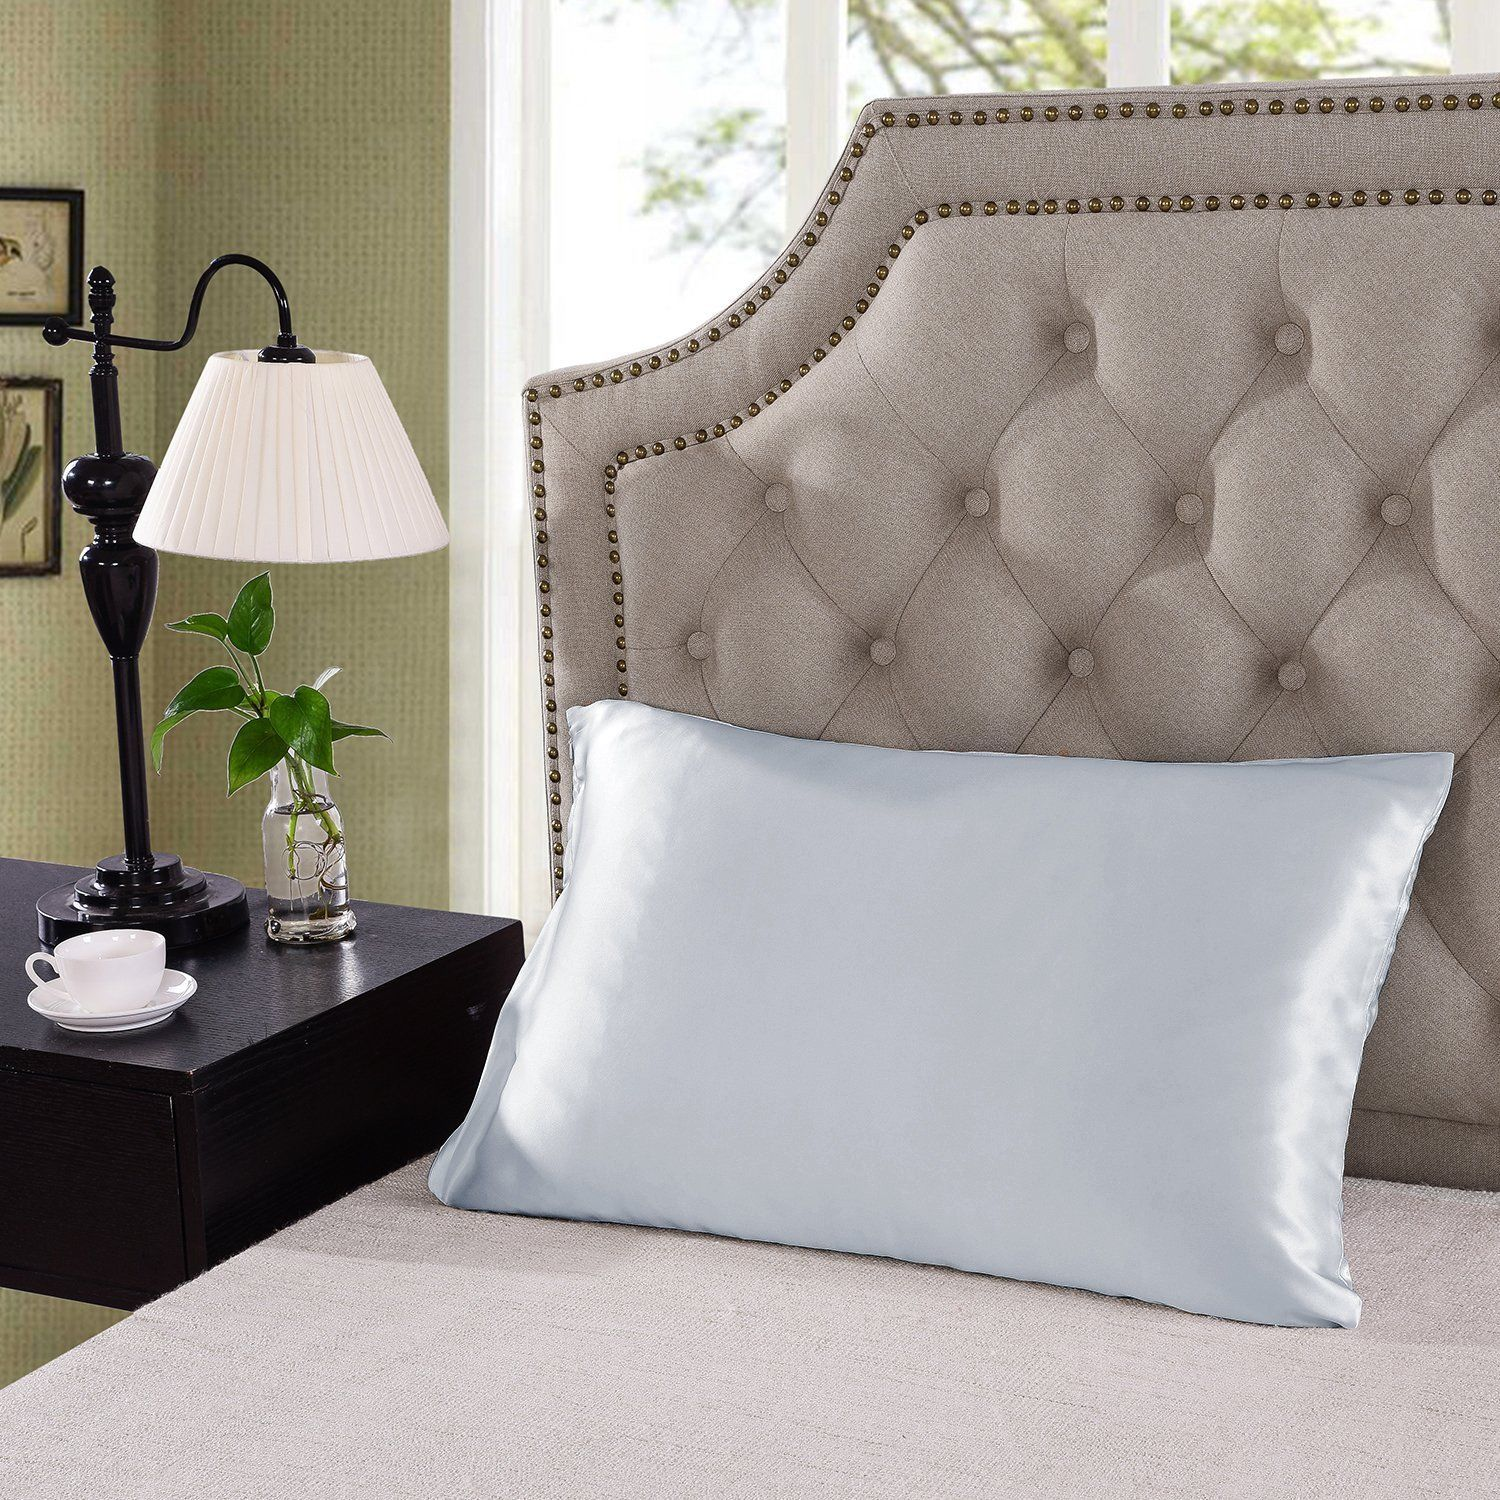 Royal-Comfort-Mulberry-Soft-Silk-Hypoallergenic-Pillowcase-Twin-Pack-51-x-76cm thumbnail 36